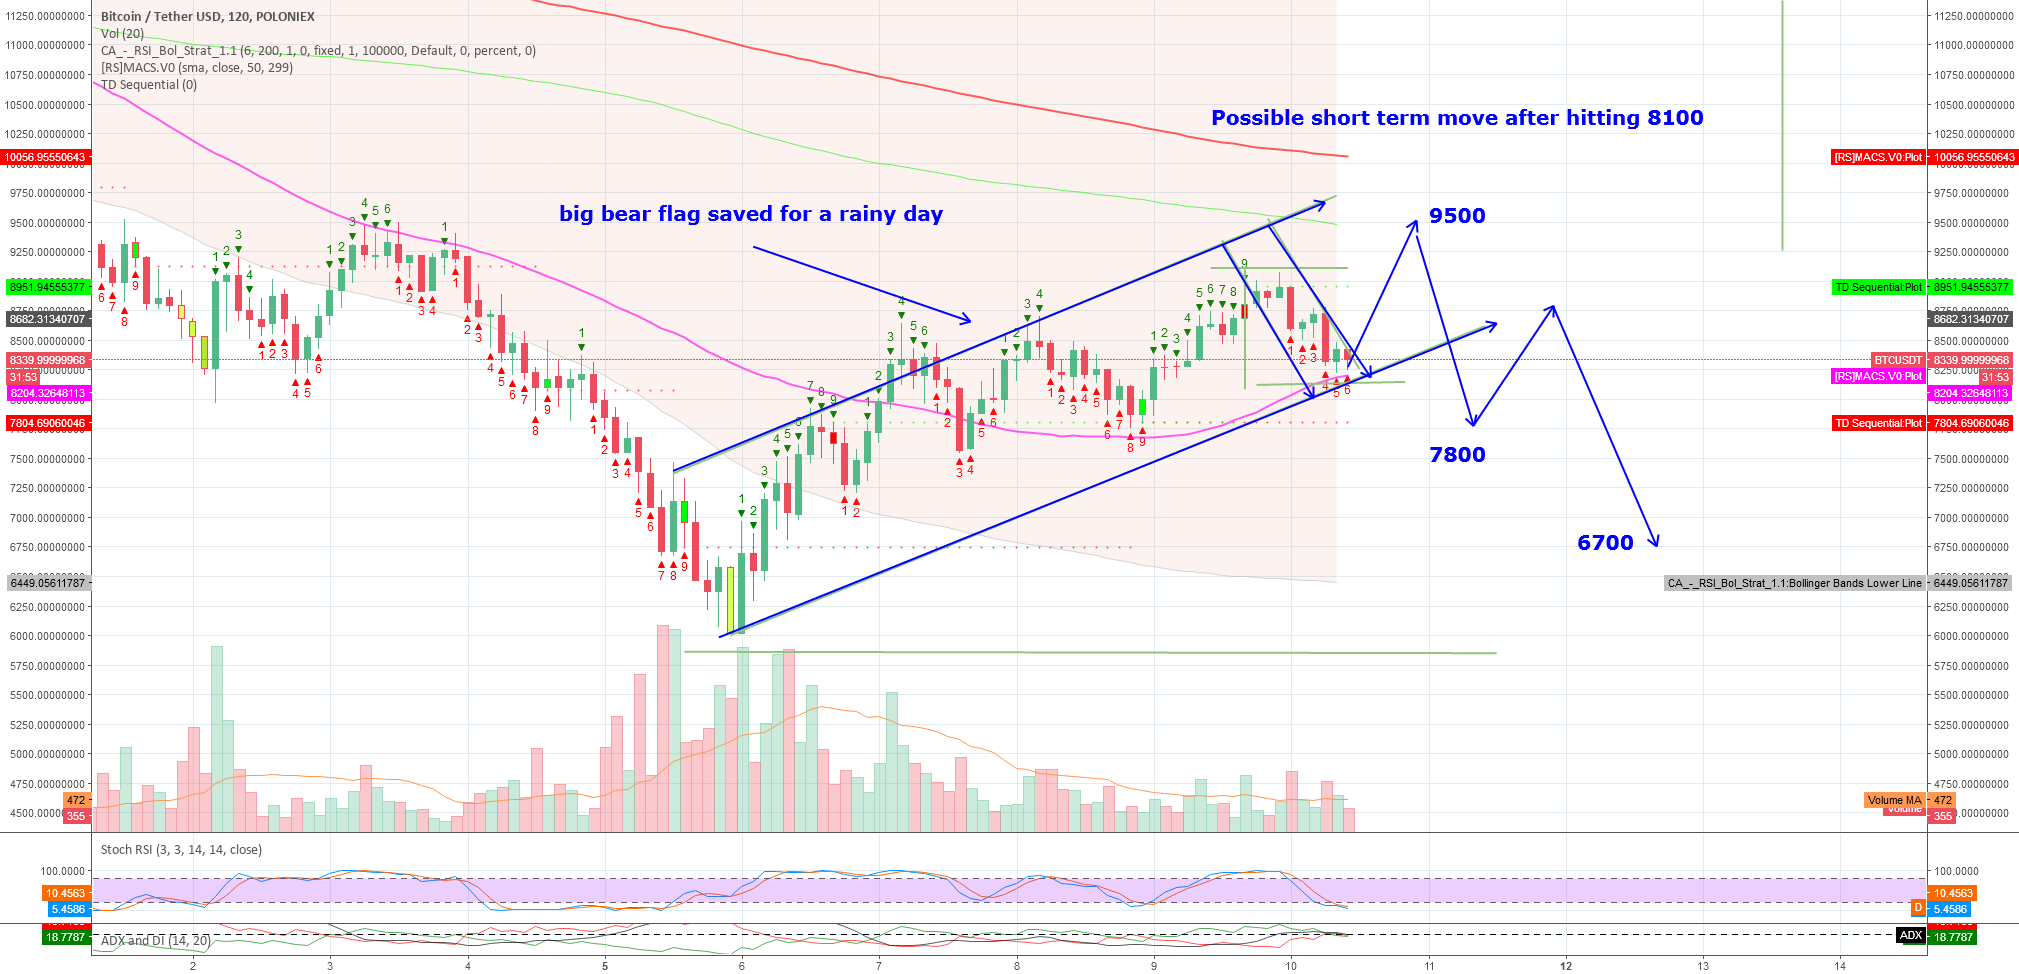 Possible shorterm move after hitting 8100 is a move to  9500